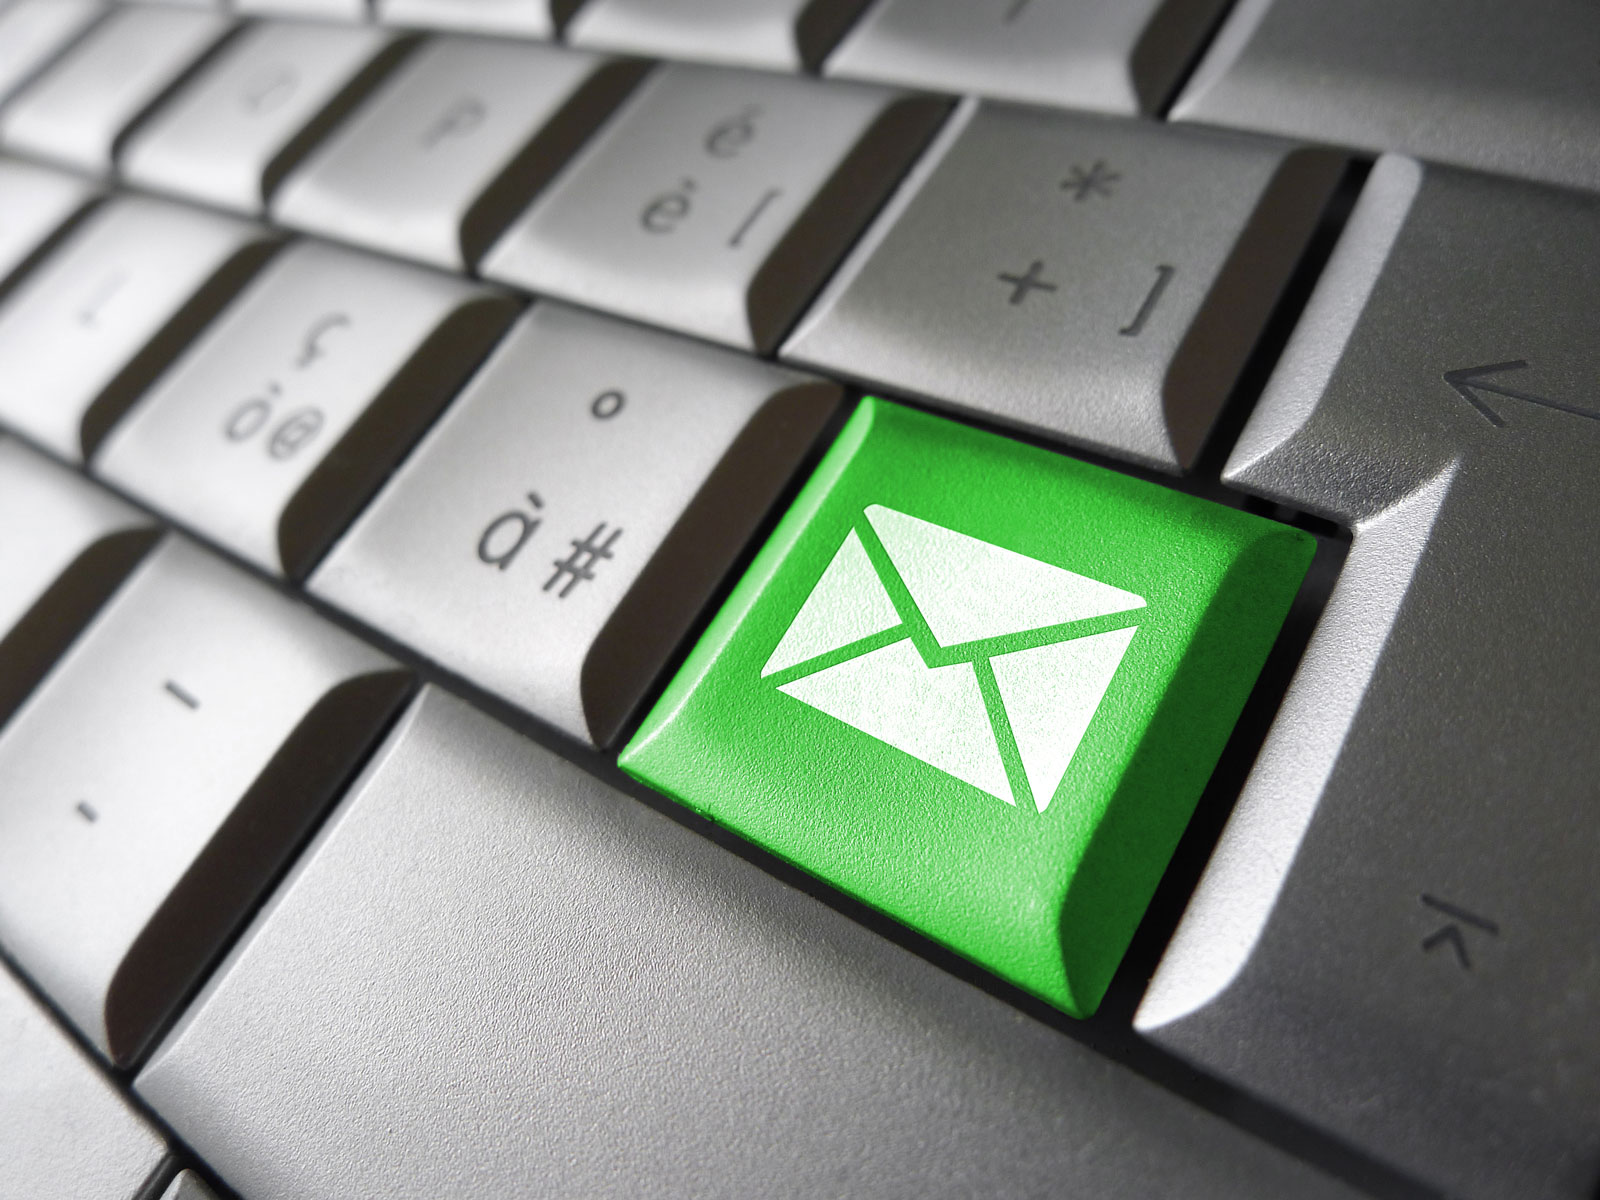 Keyboard   The 6 Best Email Marketing Platforms For Growing Businesses